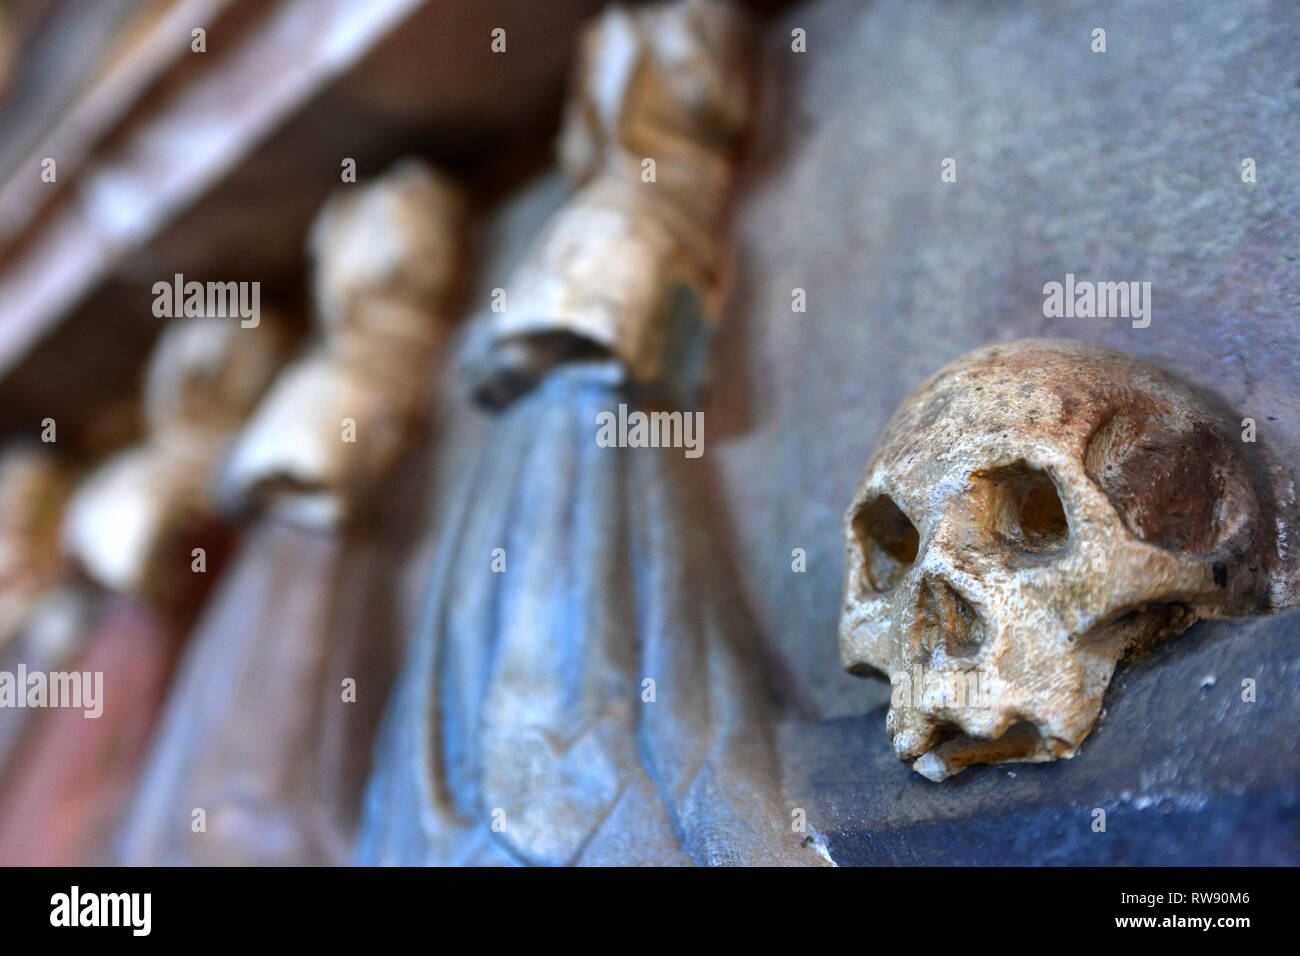 Skull carving in medieval church, Mayfield, East Sussex, UK - Stock Image